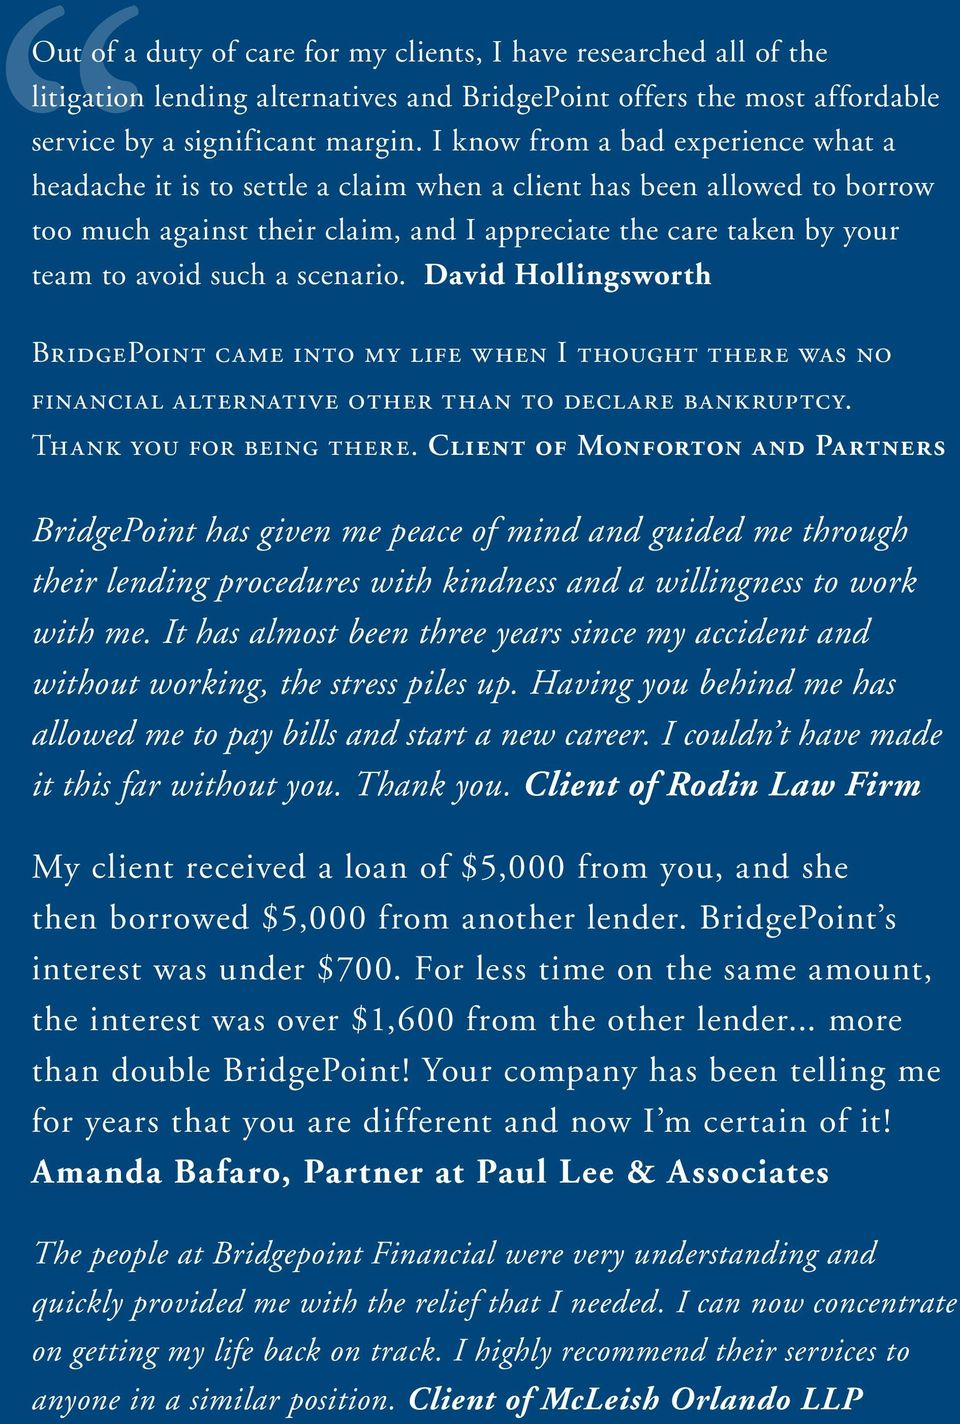 a scenario. David Hollingsworth BridgePoint came into my life when I thought there was no financial alternative other than to declare bankruptcy. Thank you for being there.